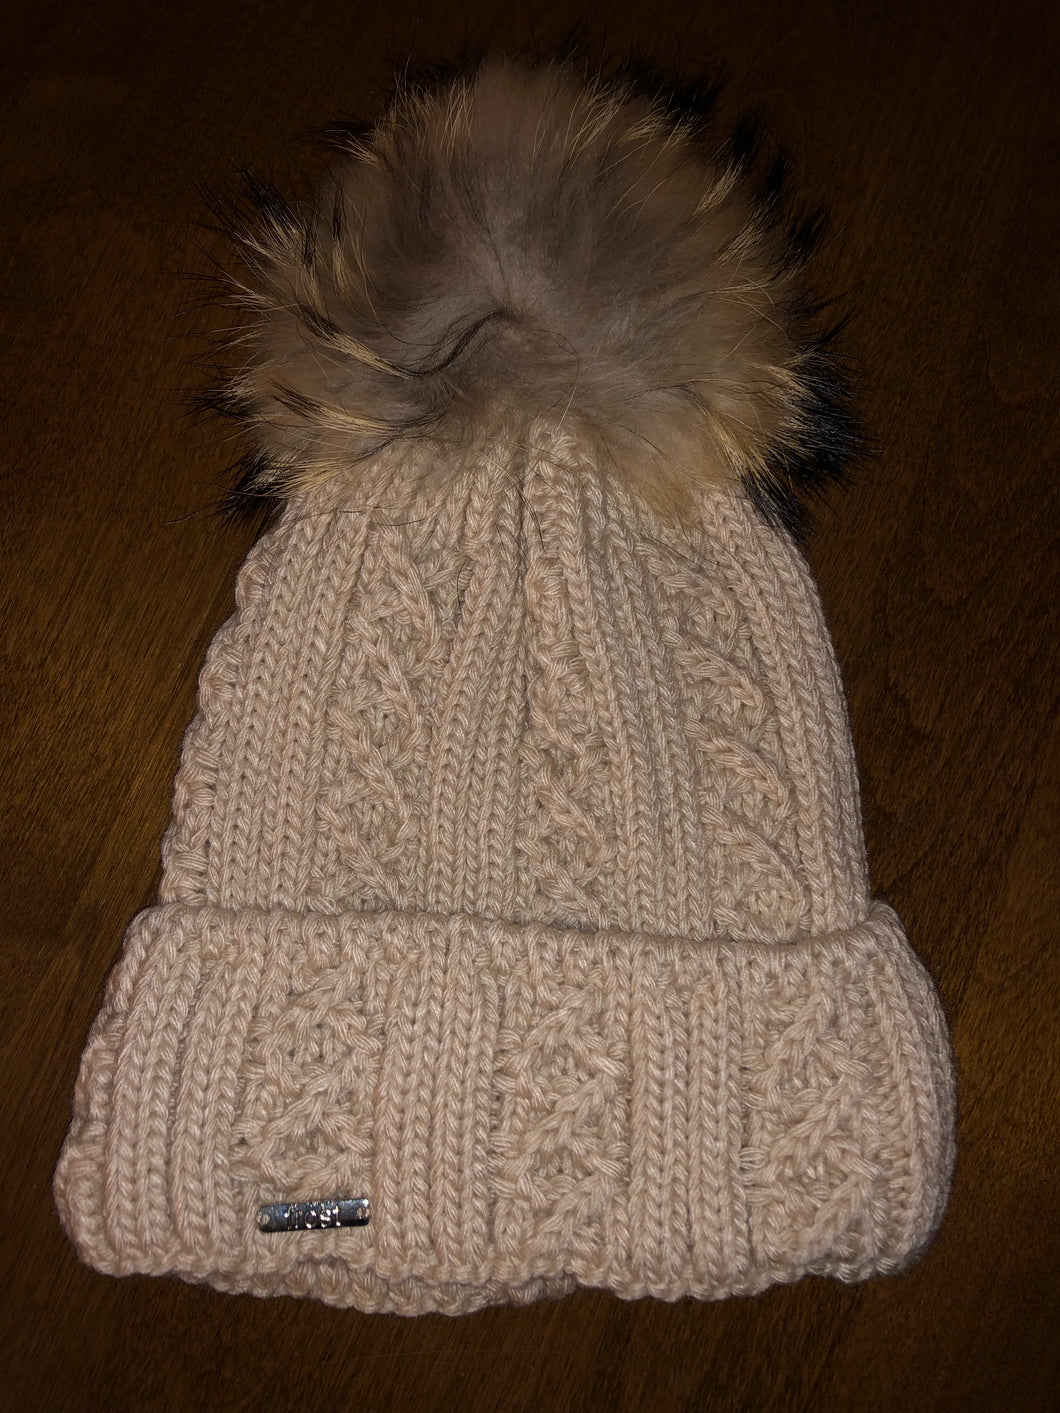 Knit Hat with removable Pom Pom